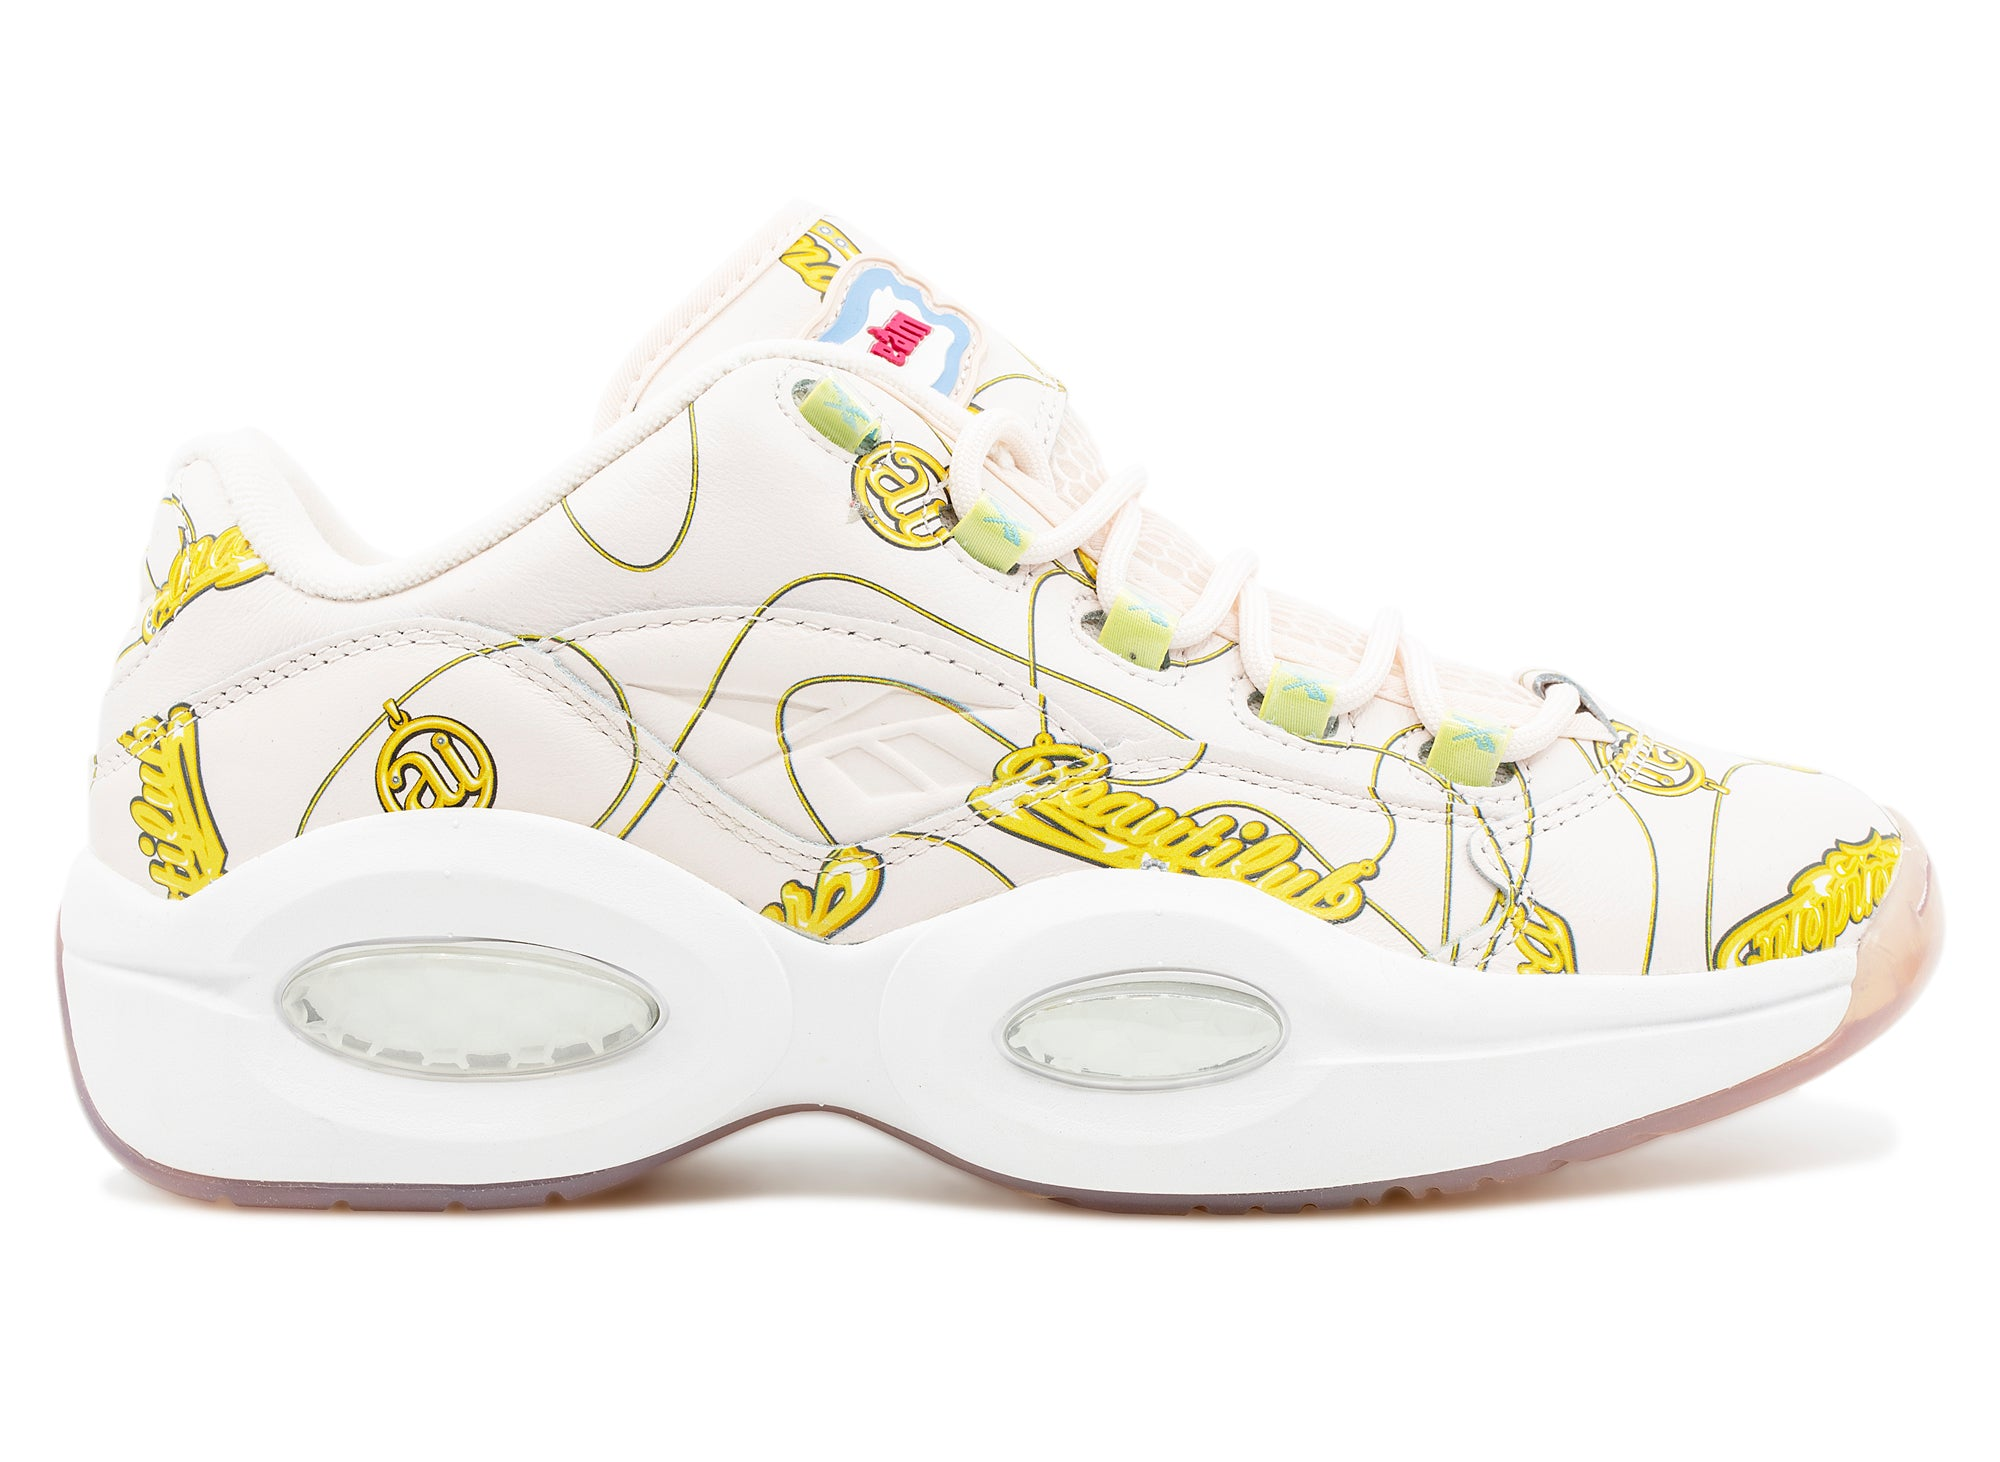 Reebok x Ice Cream Question Low 'Name Chains' xld